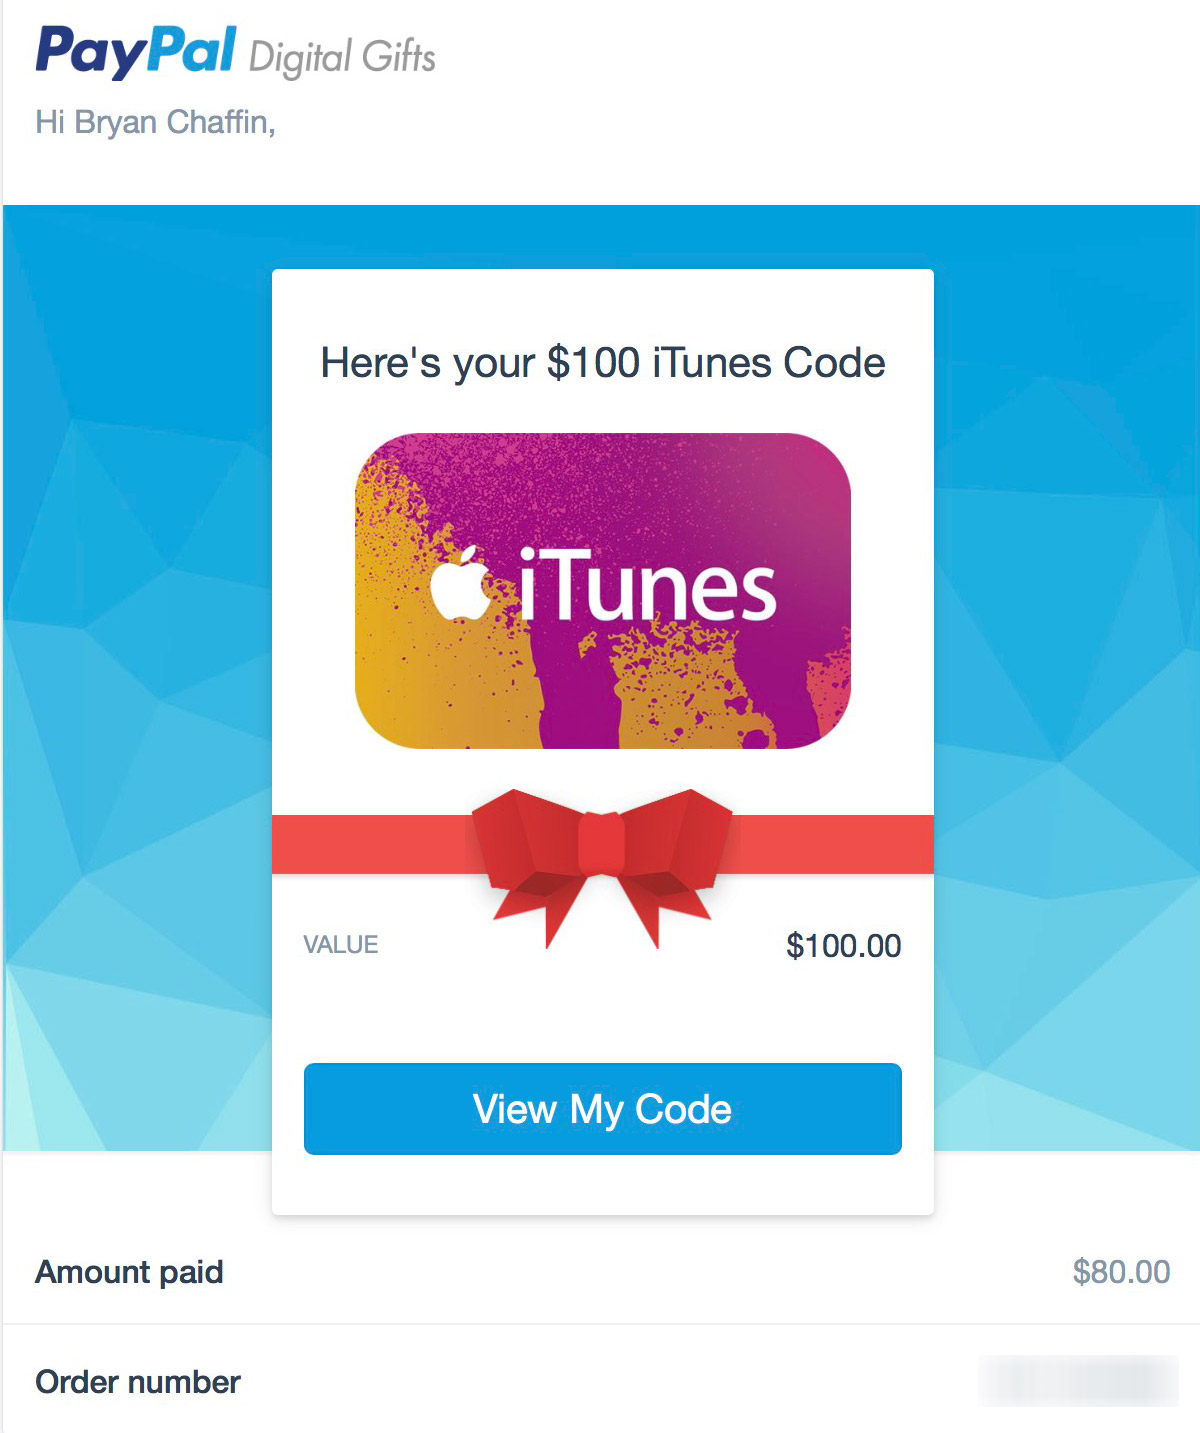 PayPal Digital Gifts Receipt